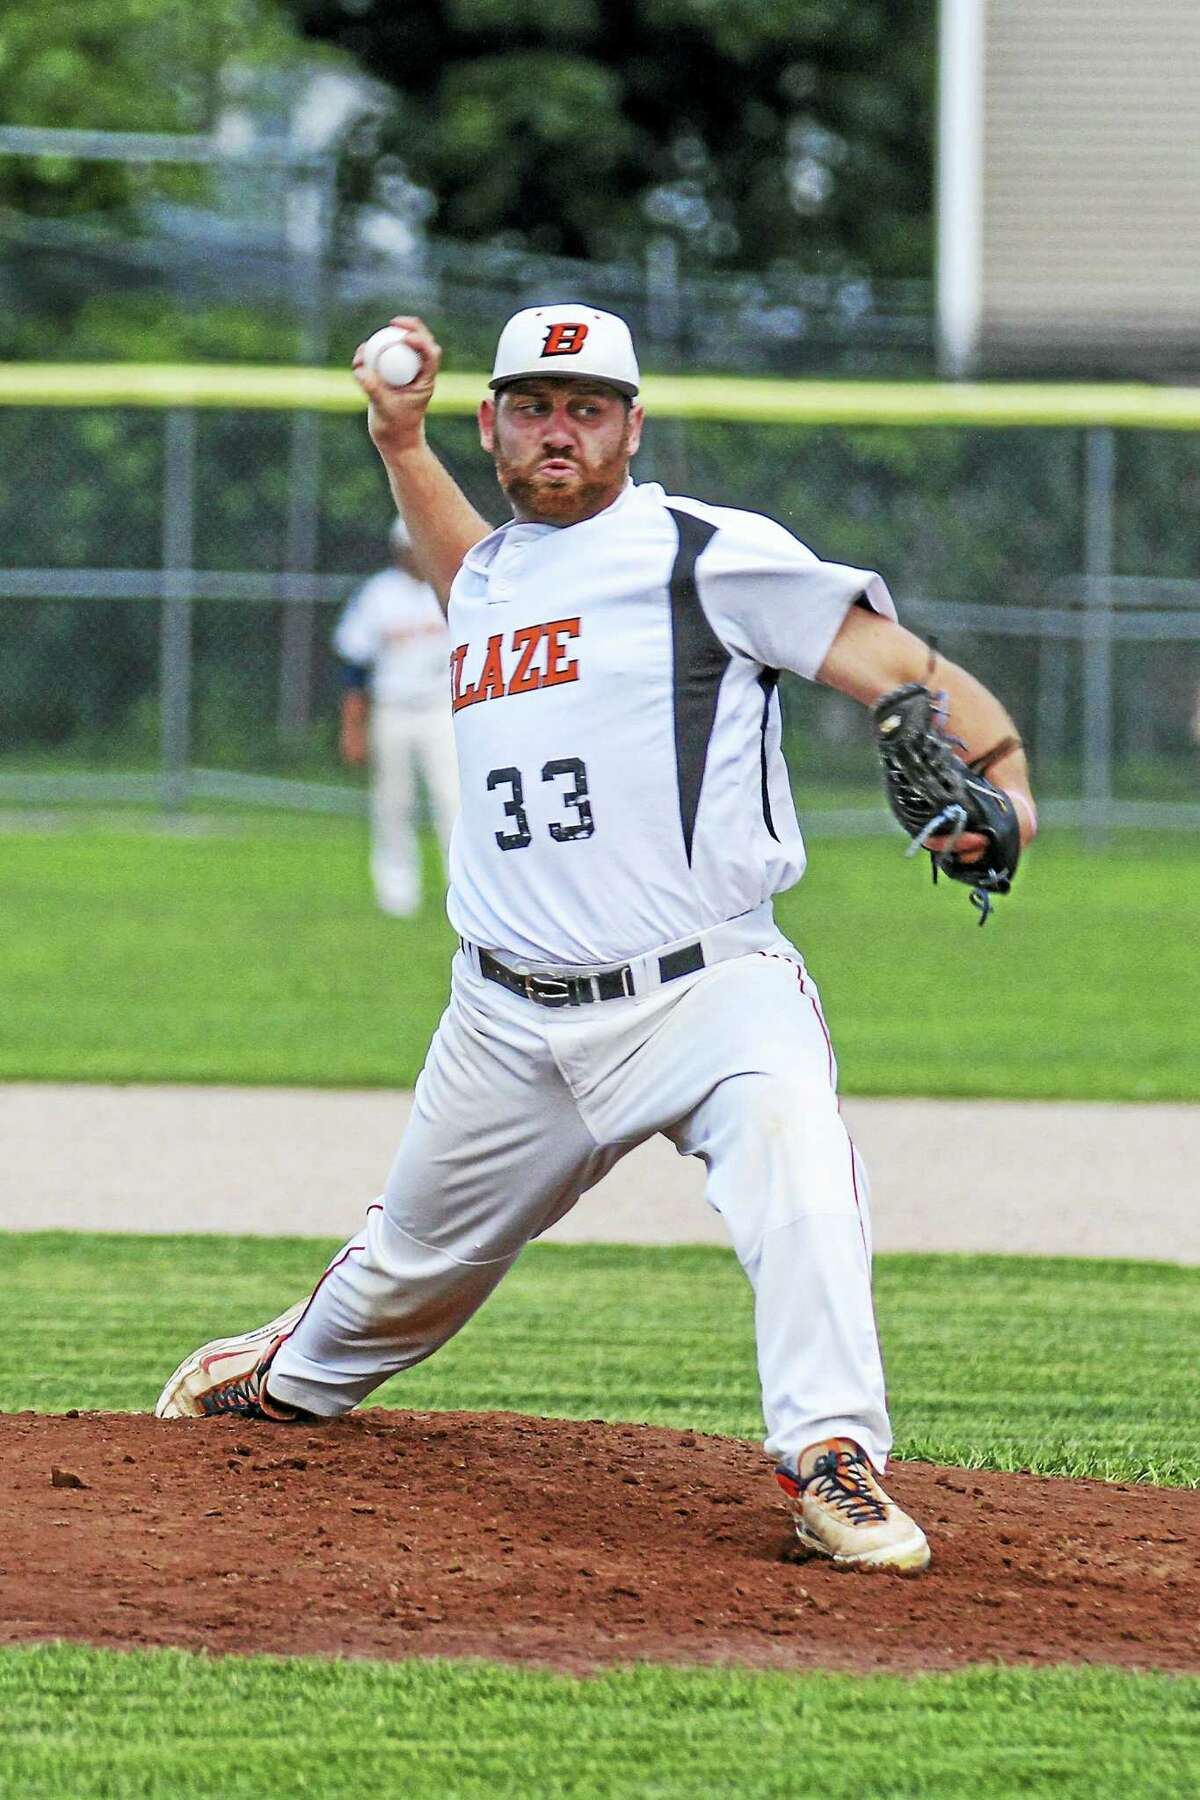 Starter Dom Severino and Watertown beat Naugatuck in the opening game of the Tri-State championship series on Monday.